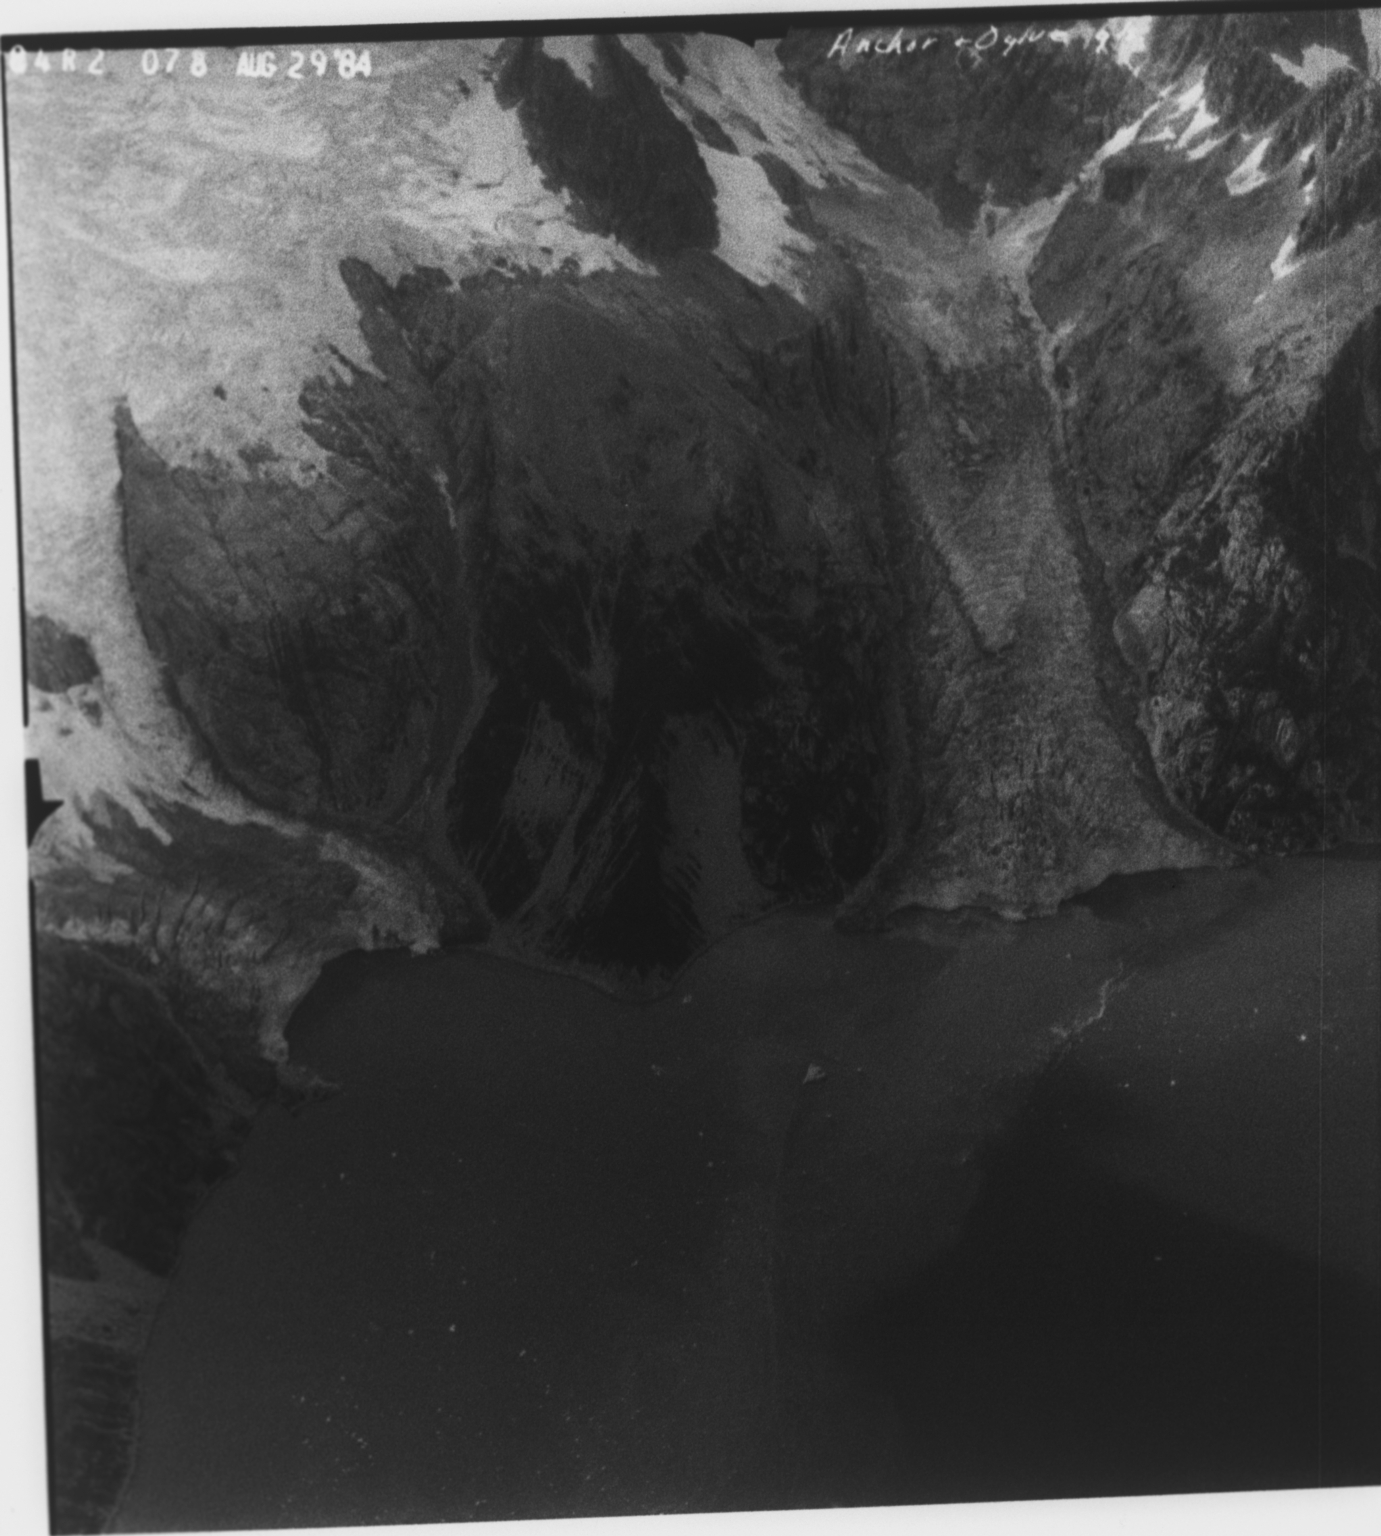 Anchor and Ogive Glacier, Alaska, United States